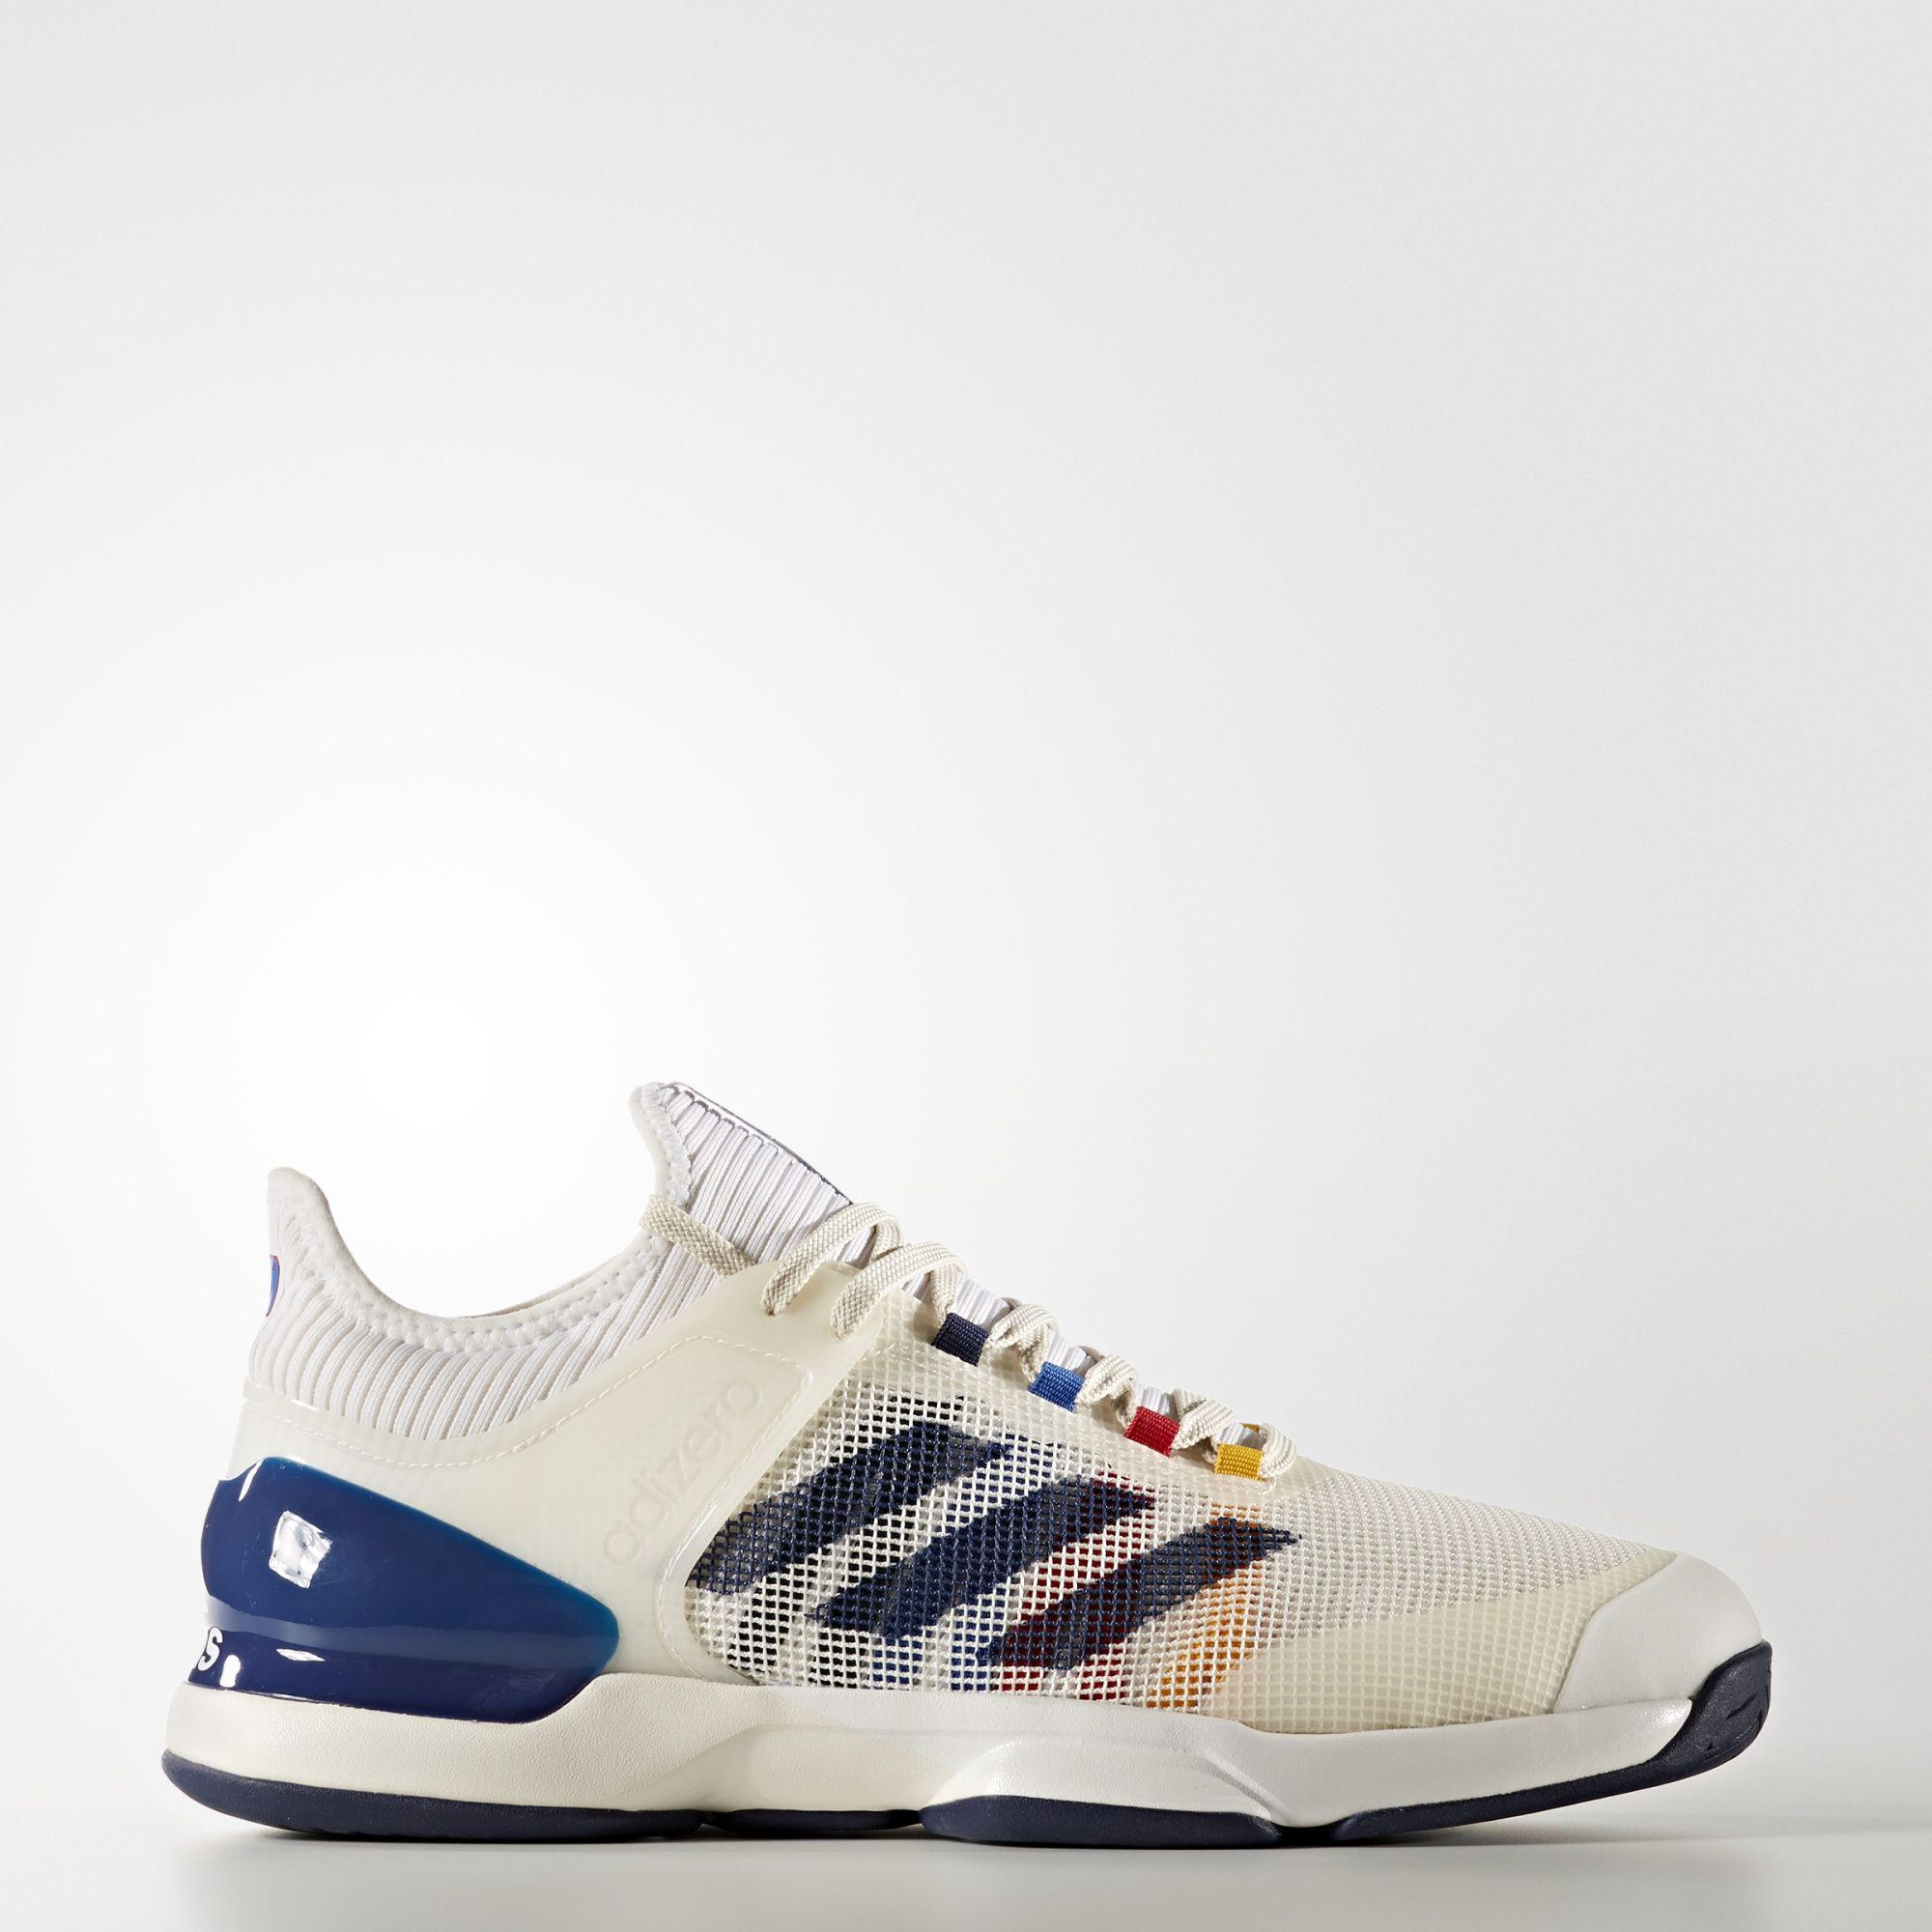 d9805e6d7 Adidas Mens Adizero Ubersonic 2.0 Pharrell Williams Tennis Shoes -  Multi-Colour - Tennisnuts.com